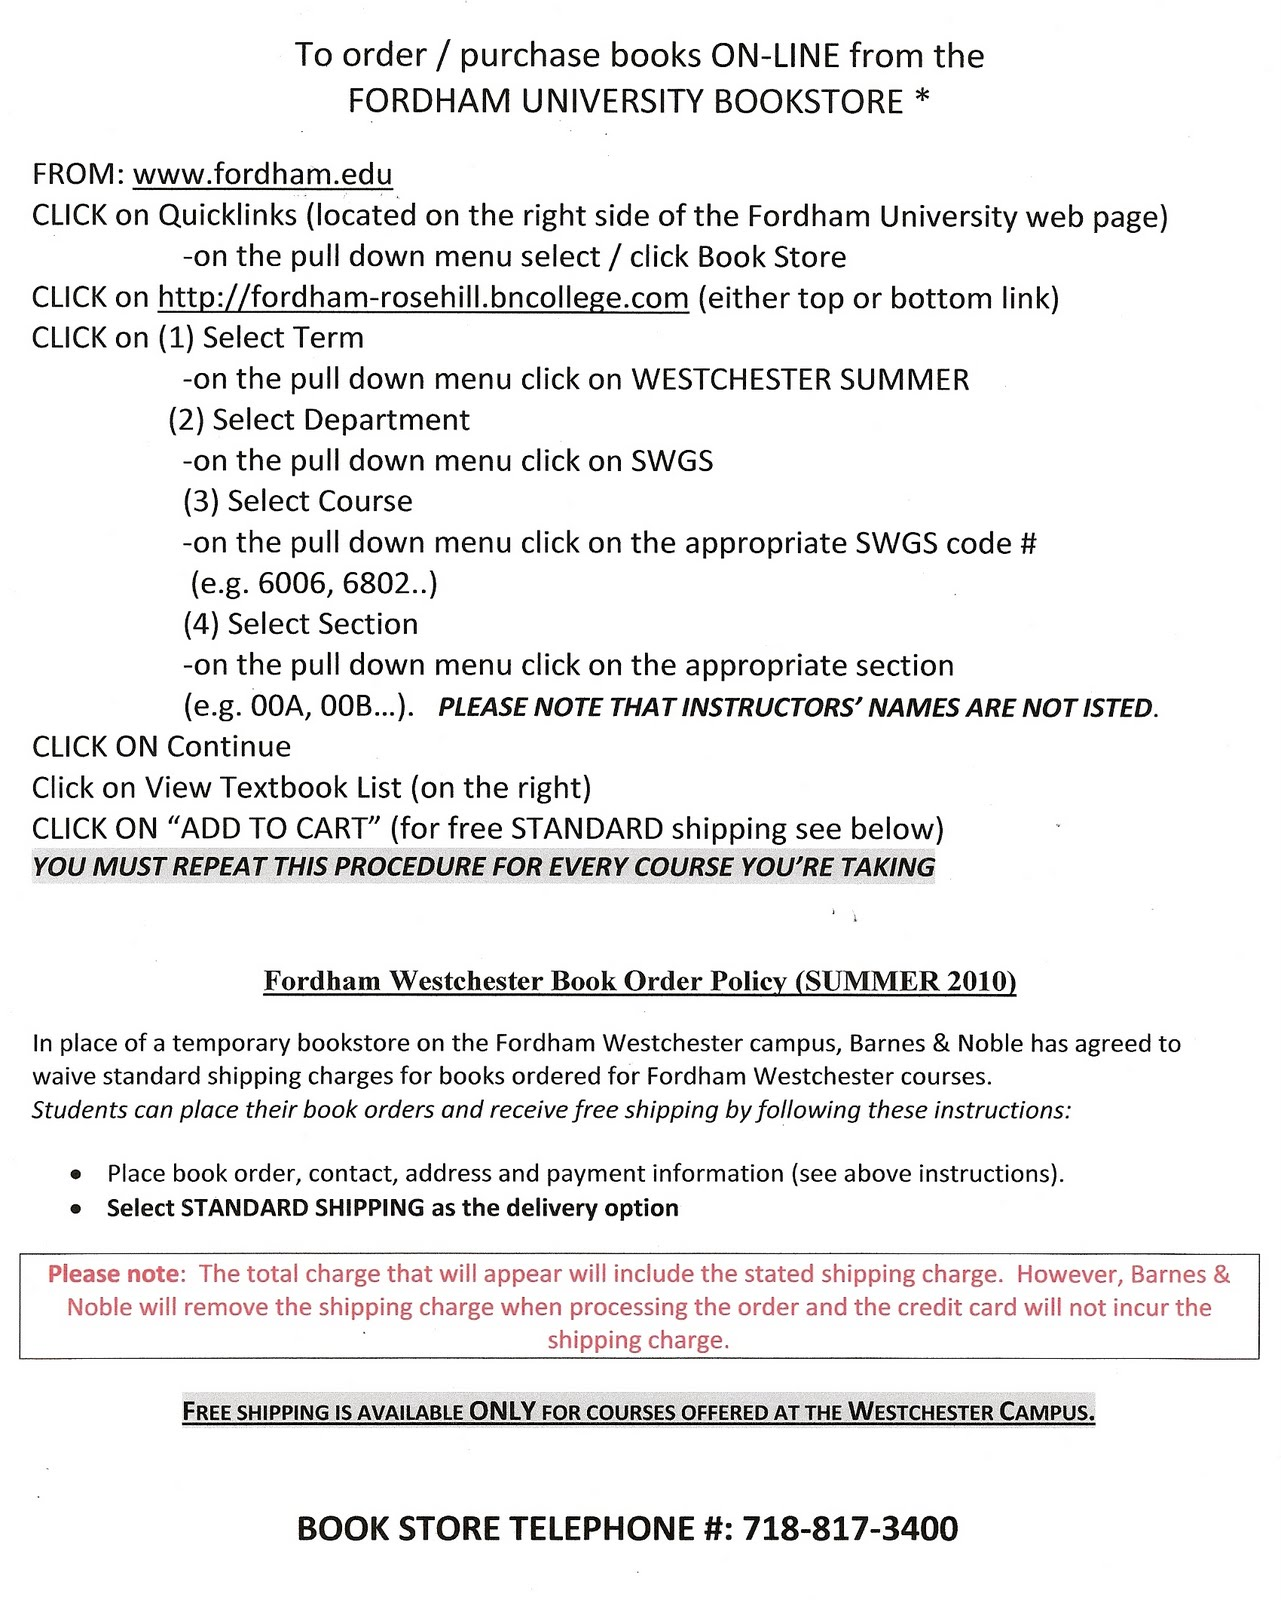 gss news and views  online order instructions for the fordham university bookstore please click on the following image for step by step details on how to purchase you summer